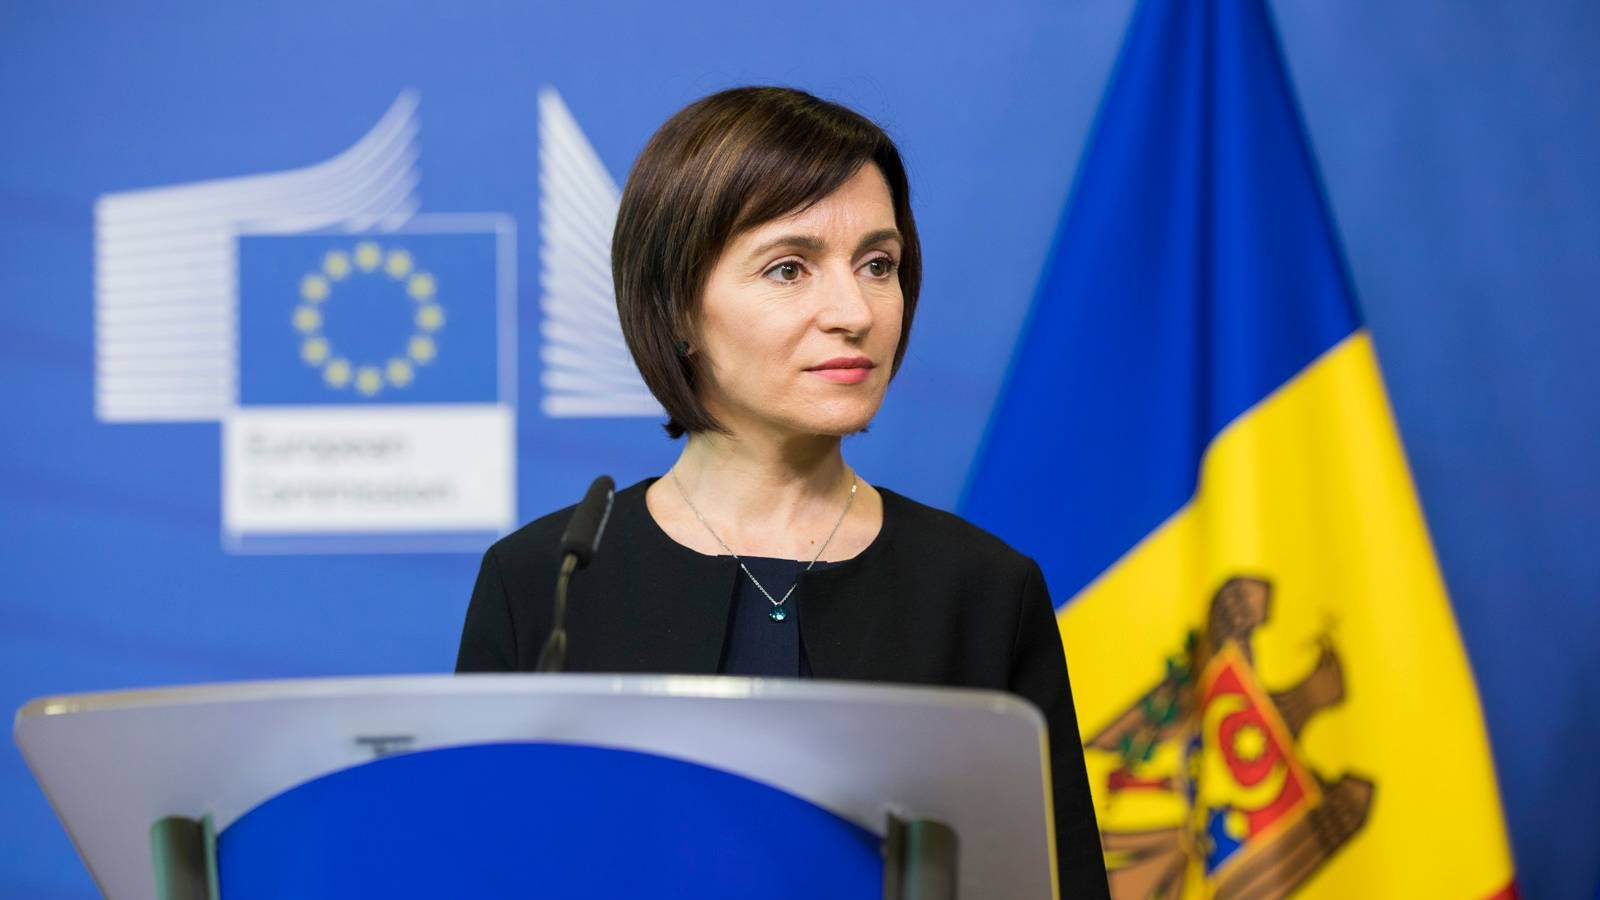 Photo: Maia Sandu visiting the European Commission as Prime Minister on July 5, 2019. Credit: Government of the Republic of Moldova